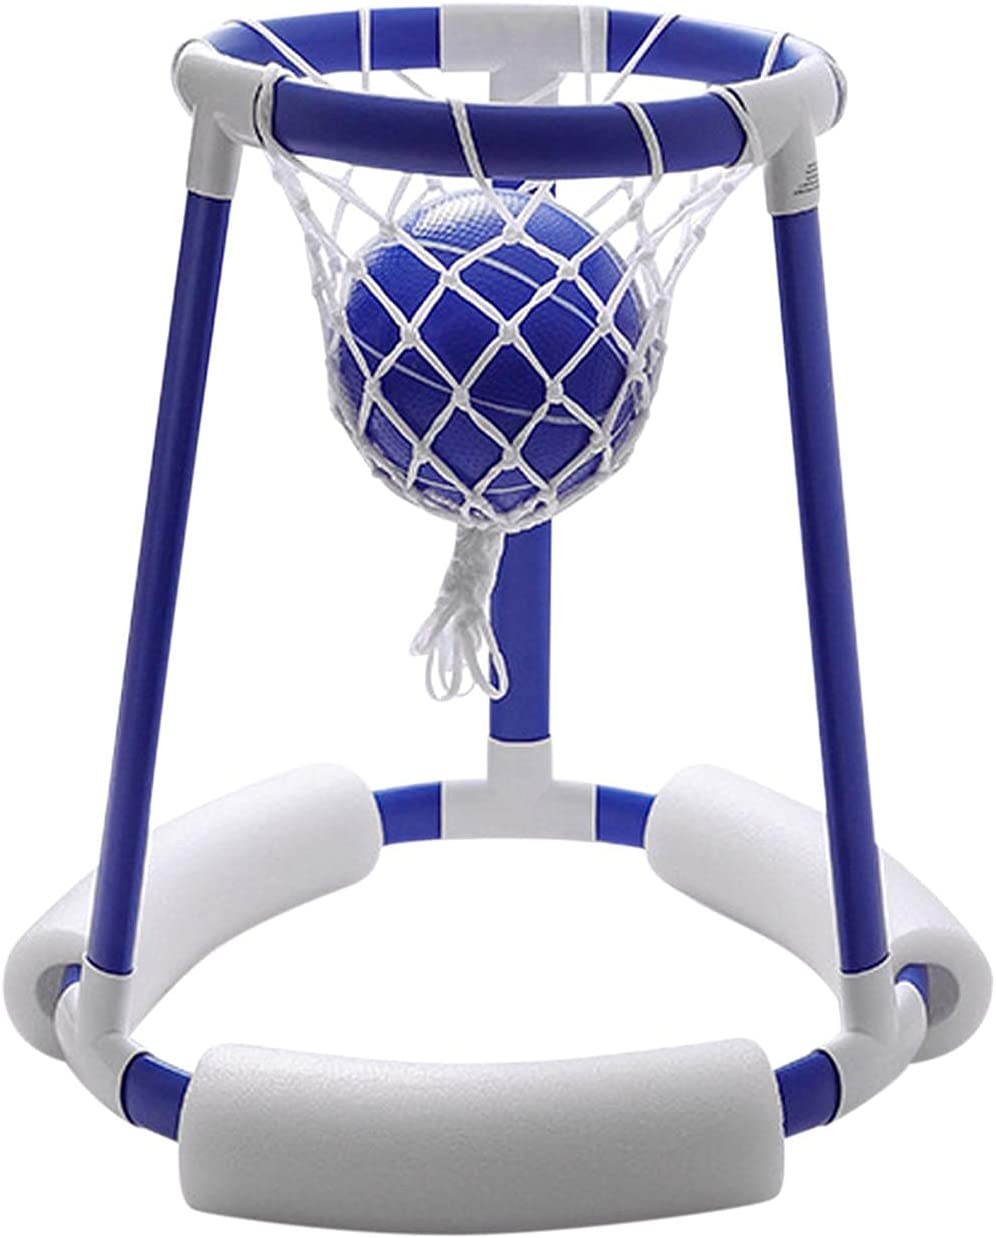 Spring new work Besokuse Inflatable Basketball Hoop Adult Sports Challenge the lowest price of Japan ☆ T Entertainment